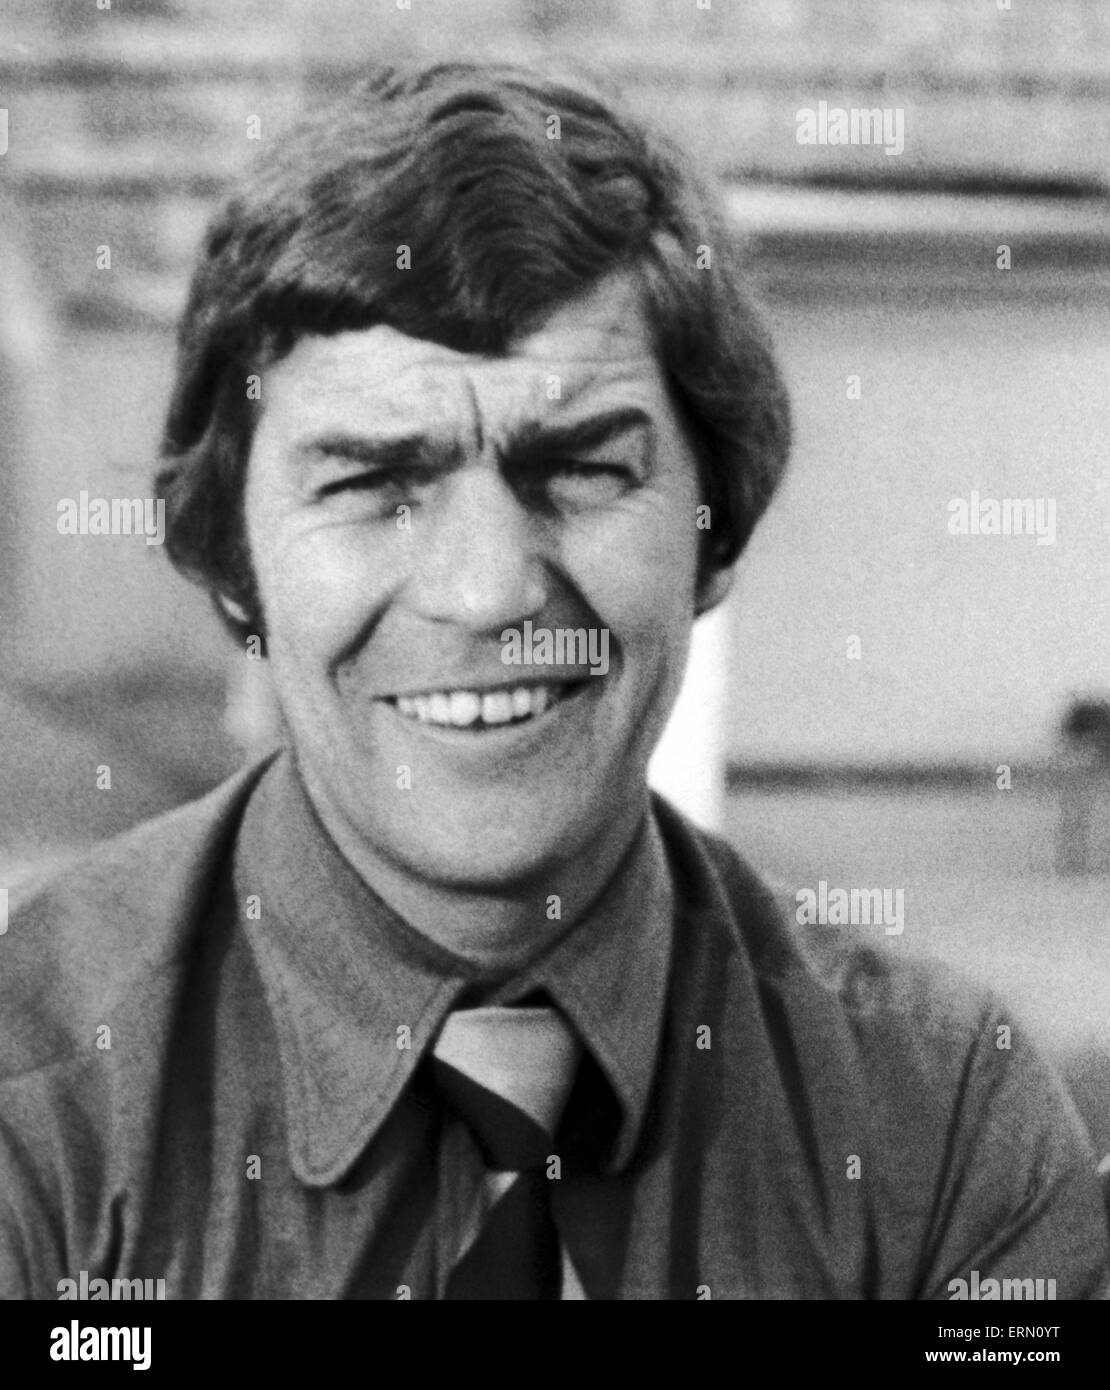 Geoff Coleman, Nuneaton Borough FC Manager. 19th August 1974. - Stock Image